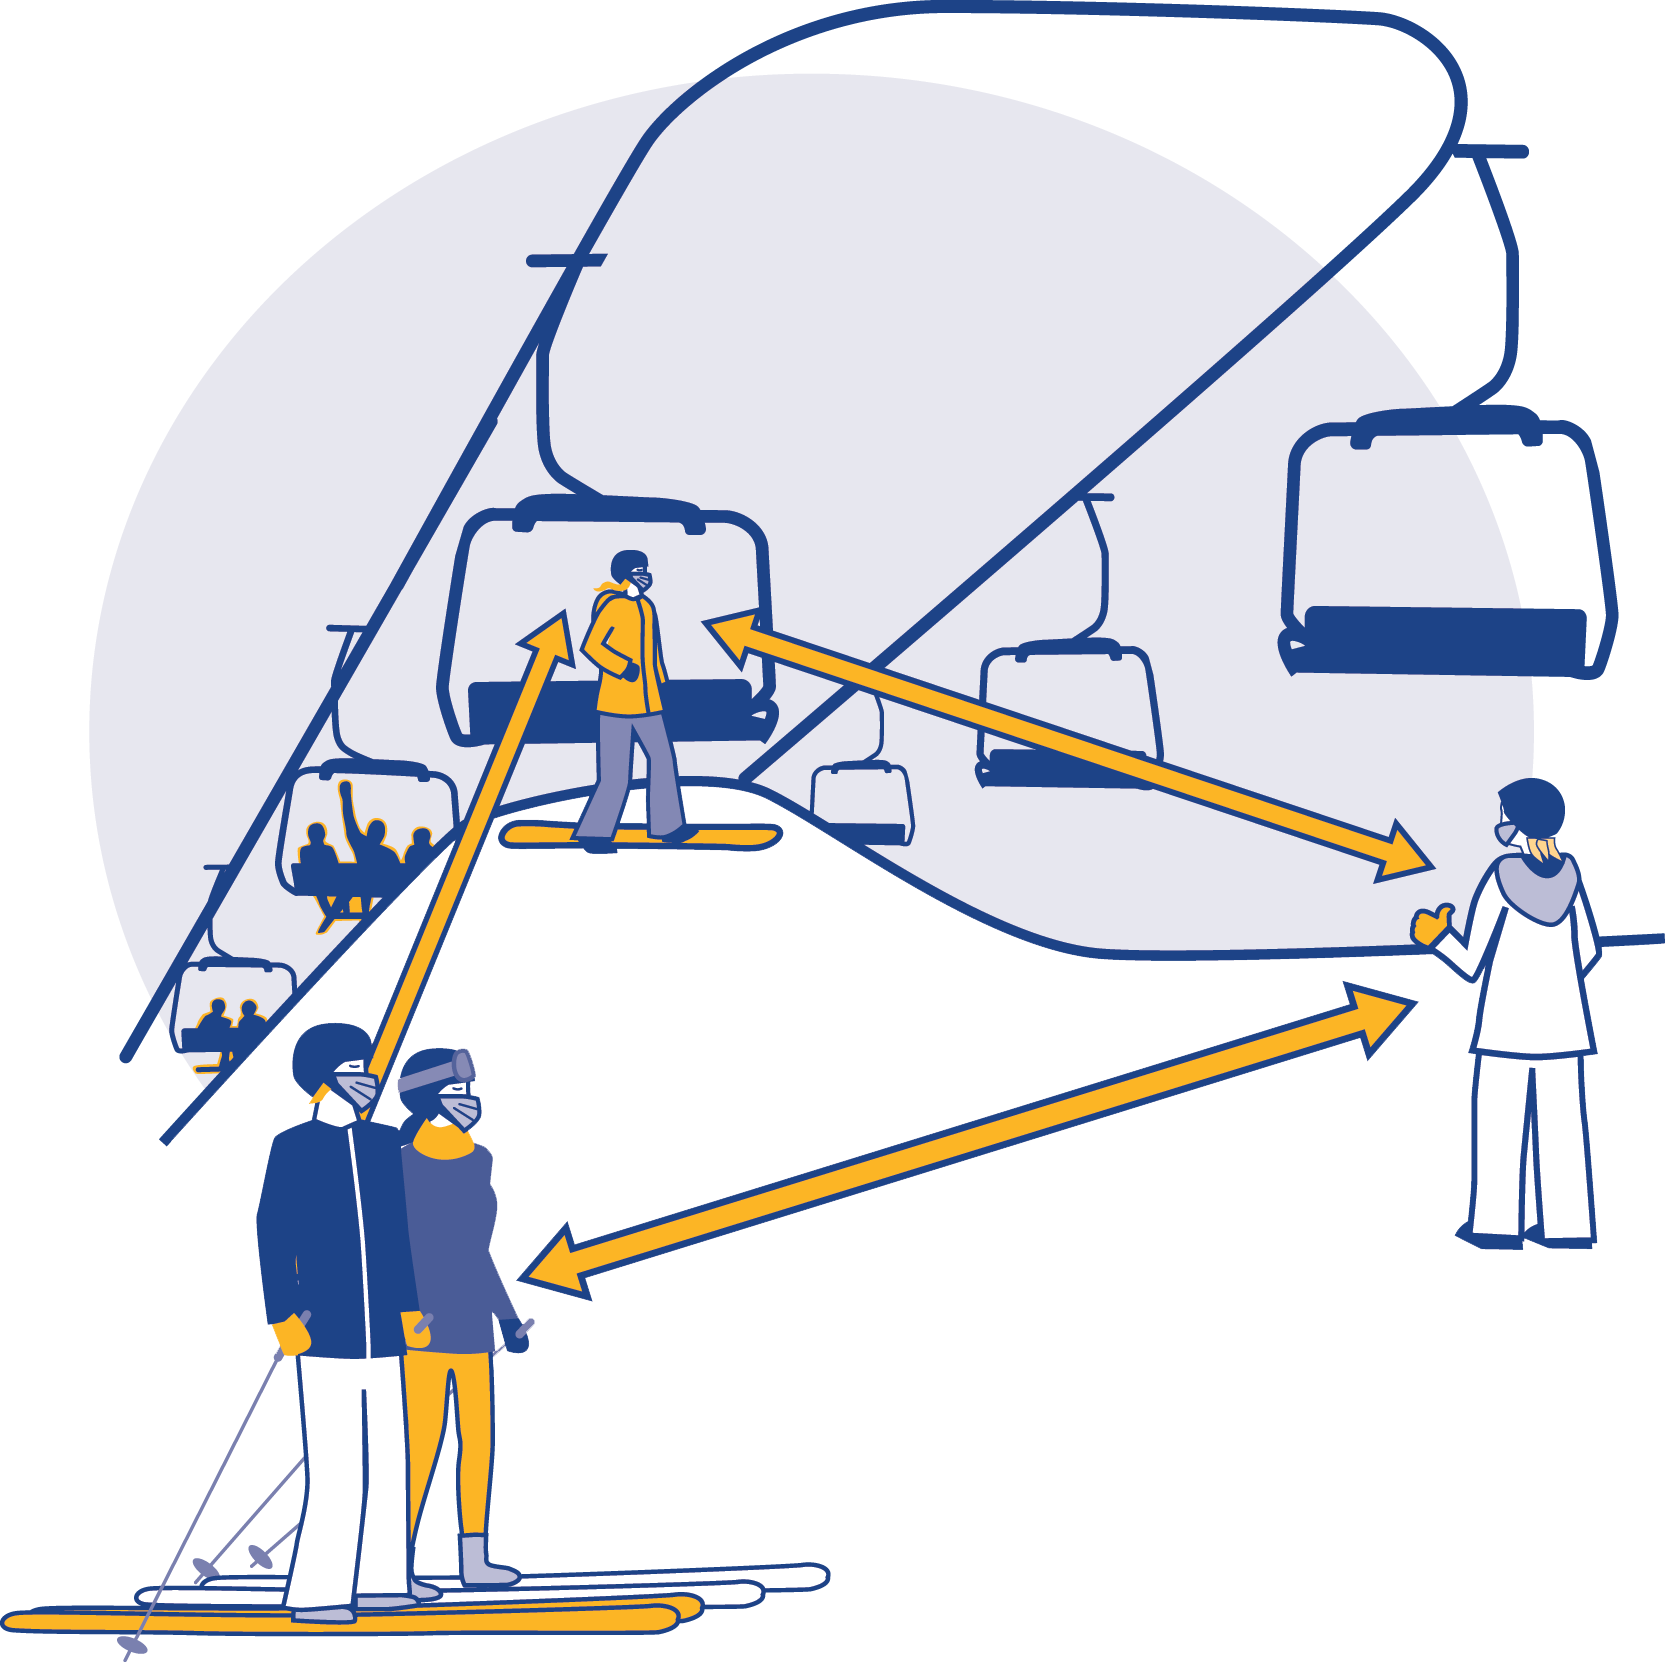 Unloading lifts safely